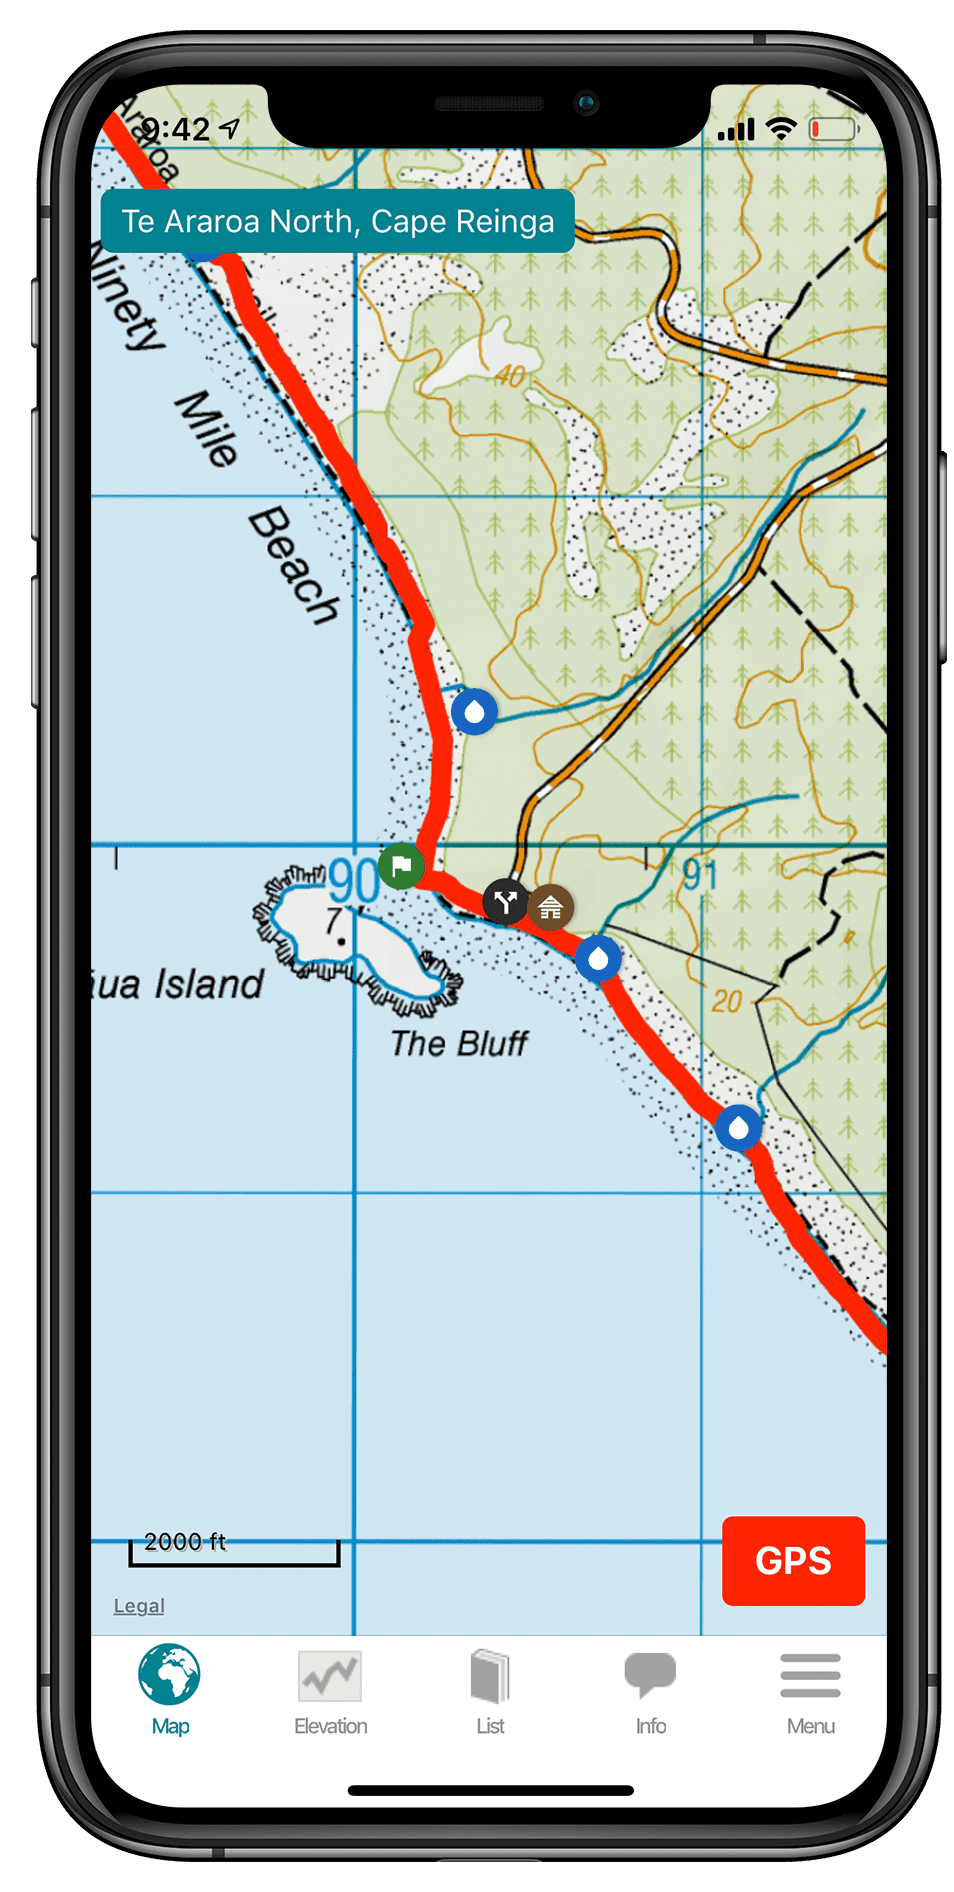 Atlas Guides - Apps made for adventure on map of palm, map of pe, map of cdt, map of northern california and oregon, map of pen, map of pa, map of san, map of delaware, map of pcc, map of md, map of asia, map of ca, map of ai, map of ms, map of pcb, map of sun, map of msp, map of nec, map of pei, map of pch,